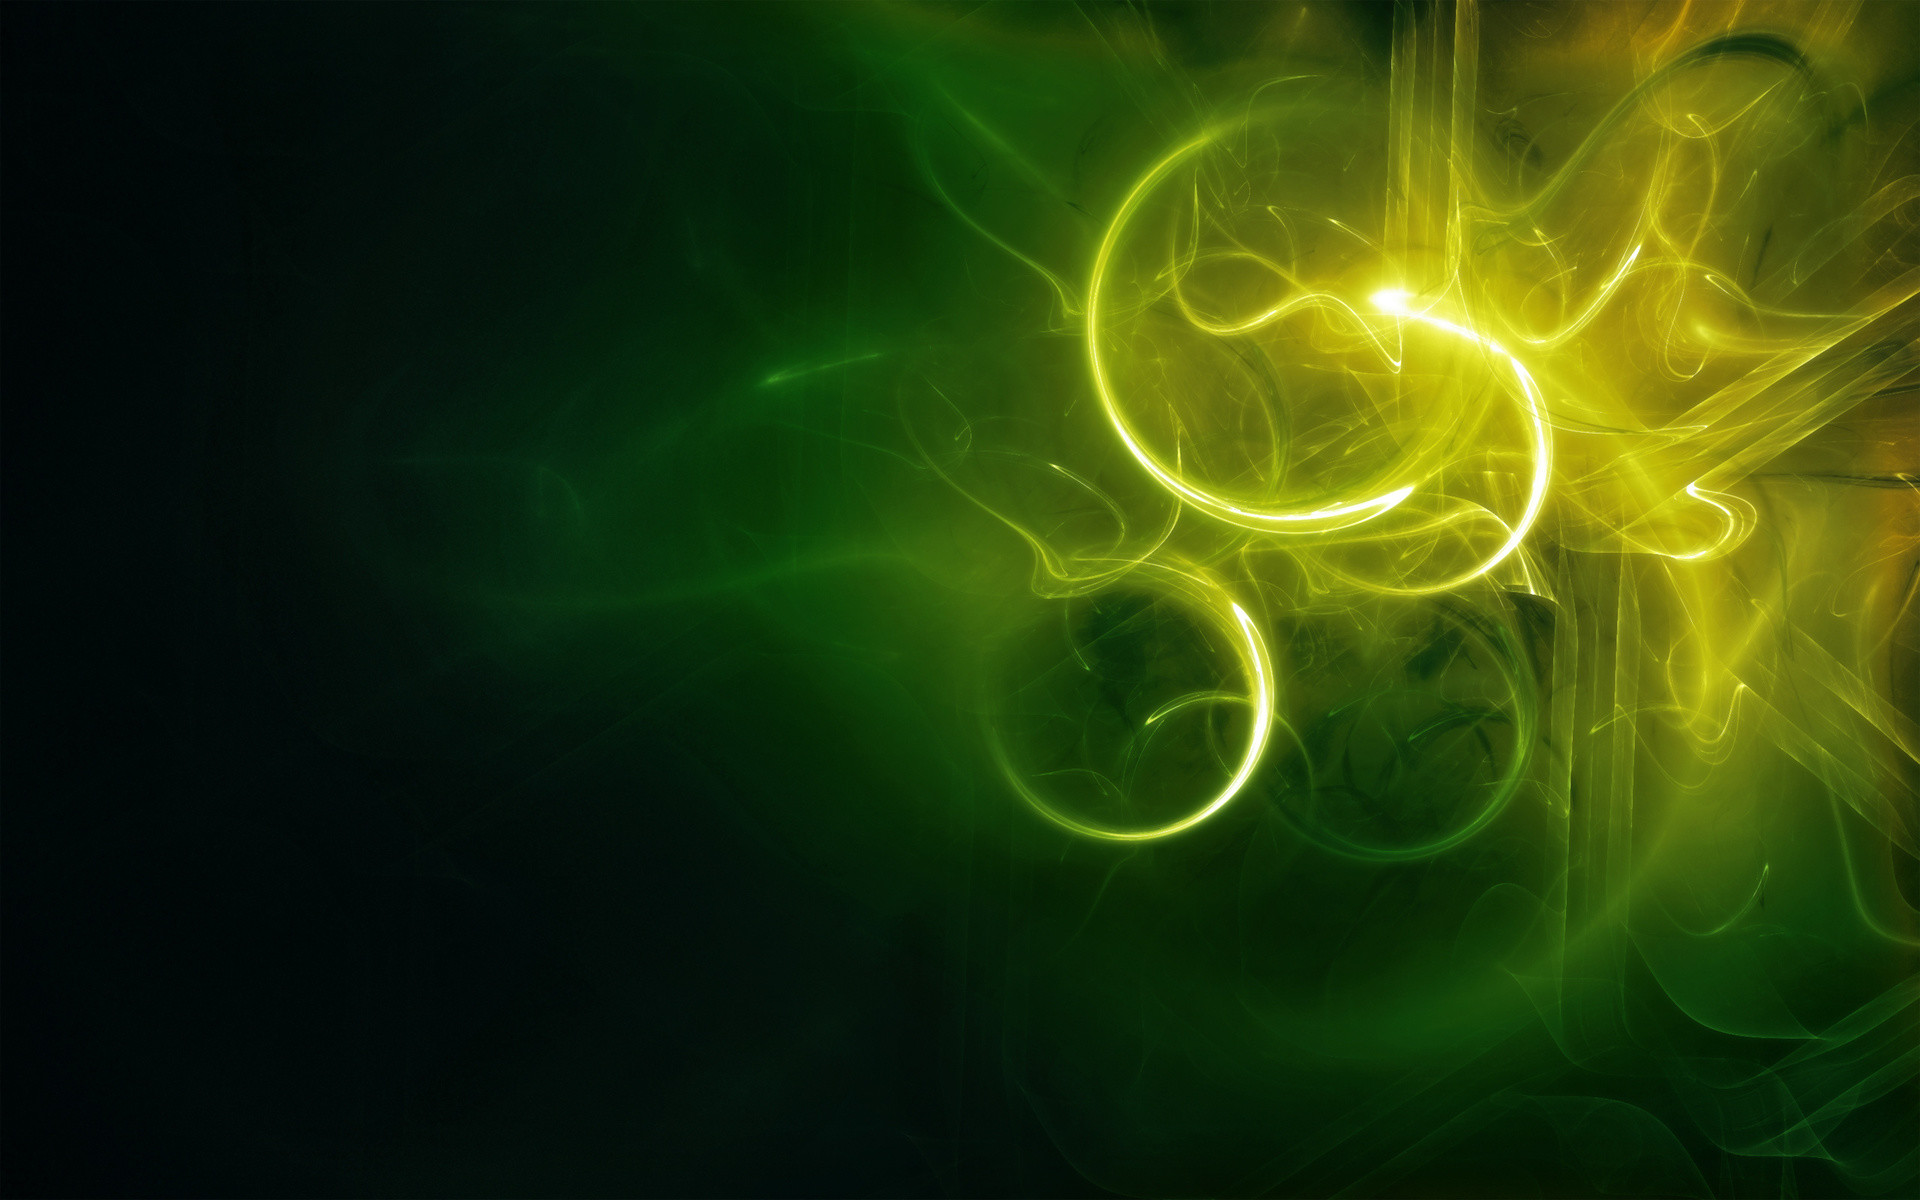 Abstract Light Background 42. Download Full Size File